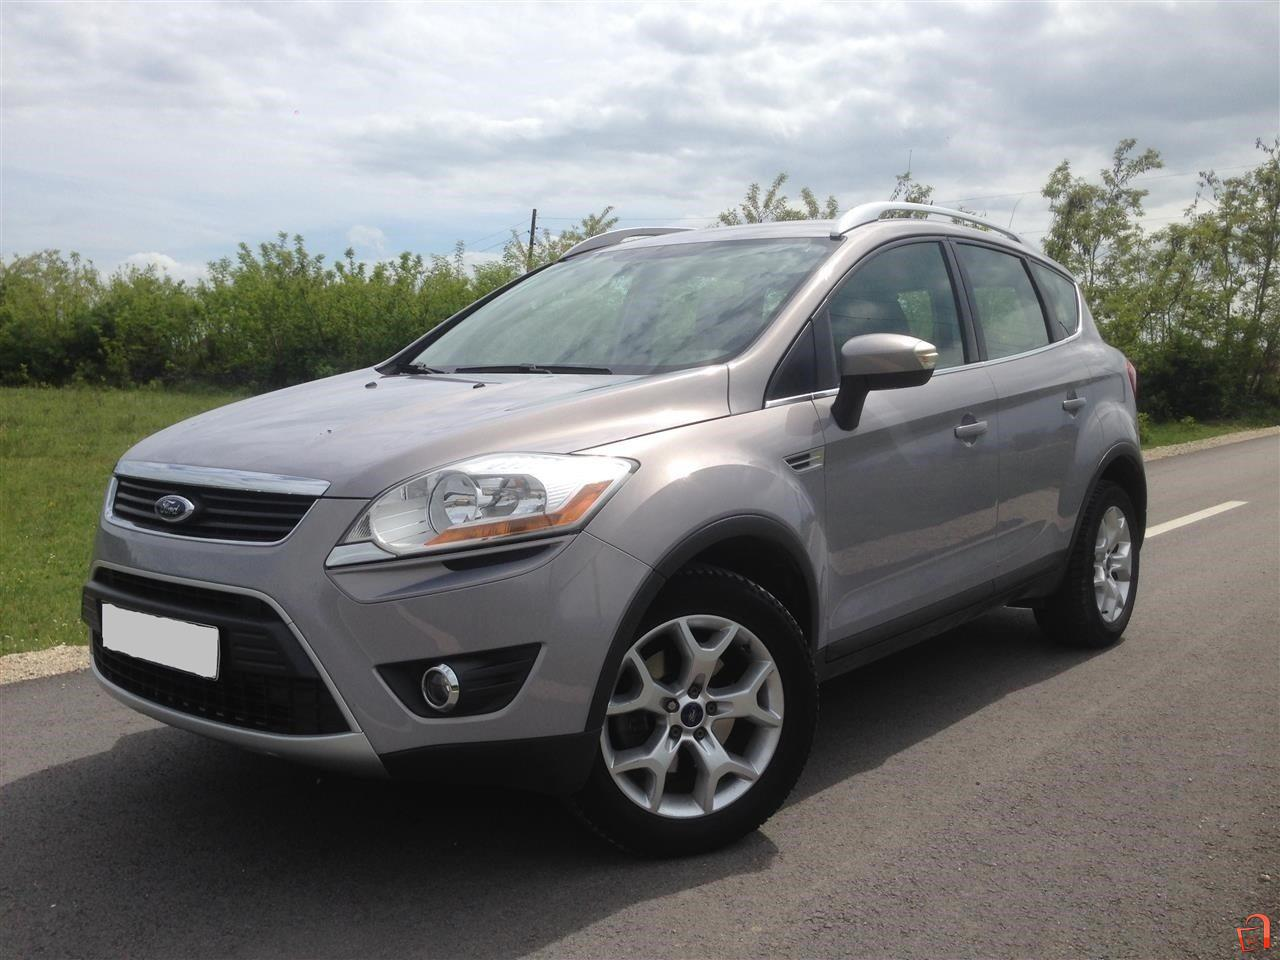 ford kuga 2 0 tdci 11 automatik 4x4 awd. Black Bedroom Furniture Sets. Home Design Ideas